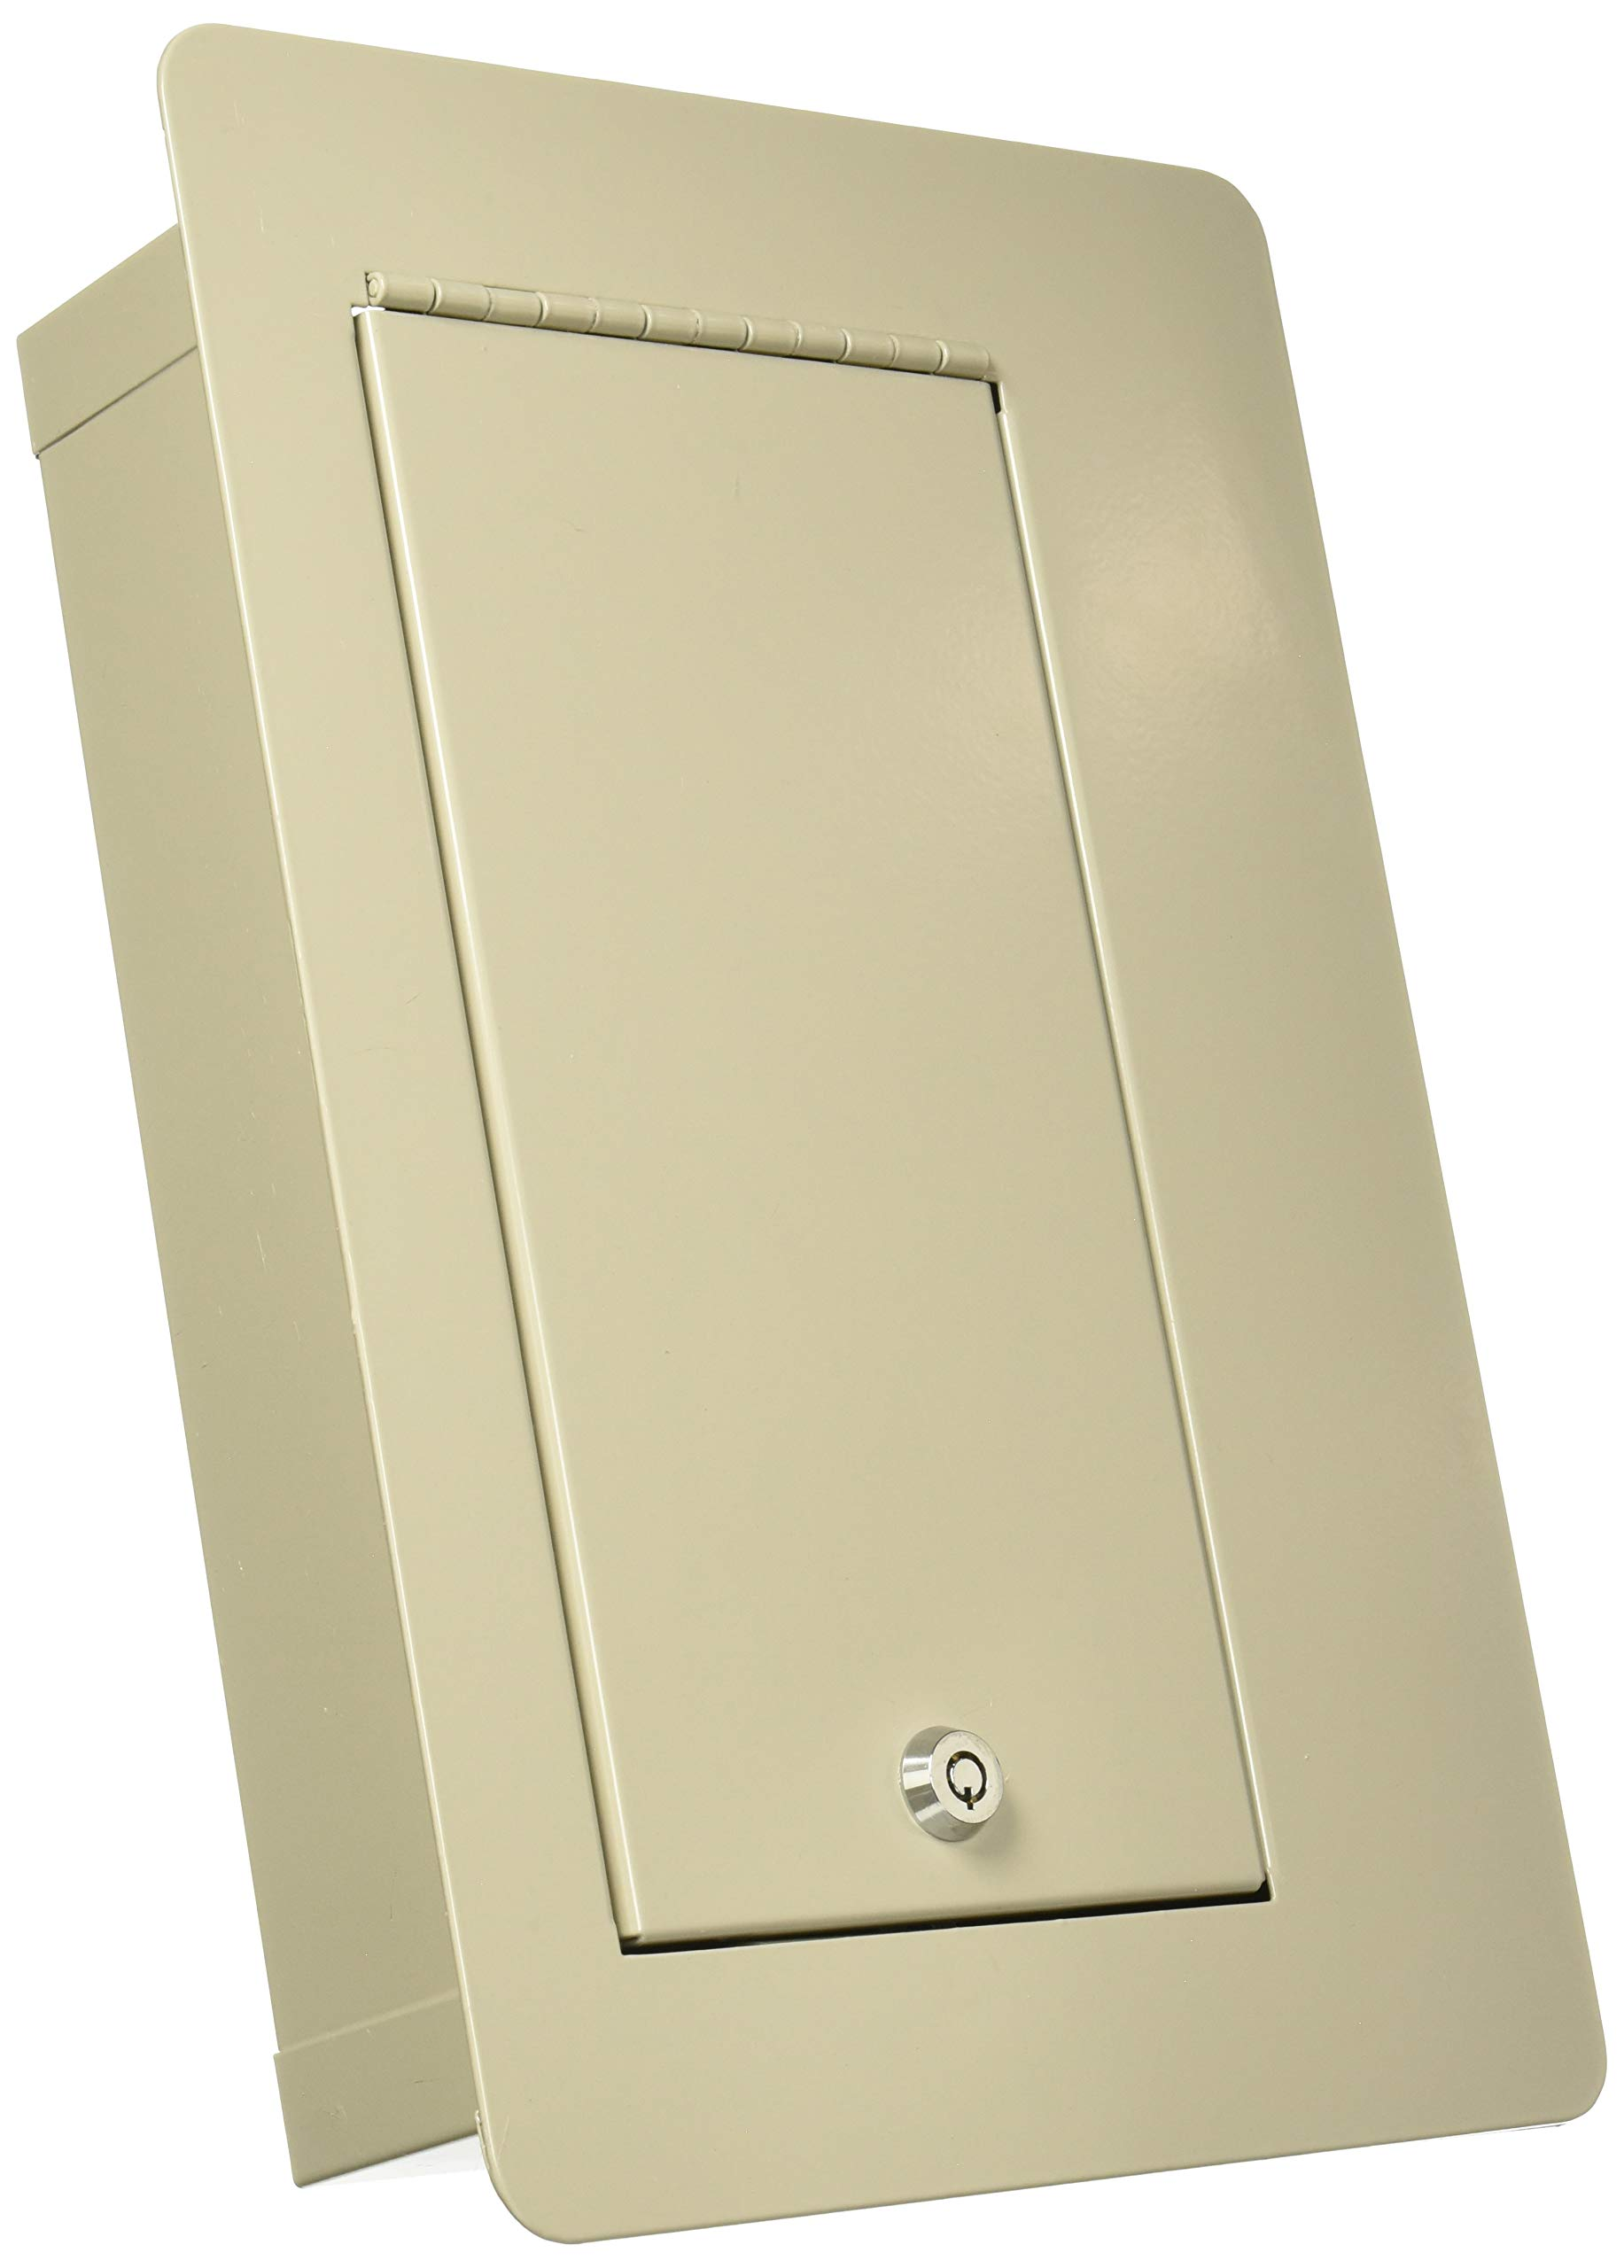 Buddy Products Economy Wall Safe, Steel, 3.75 x 9 x 9.375 Inches, Putty (3105-6) by Buddy Products